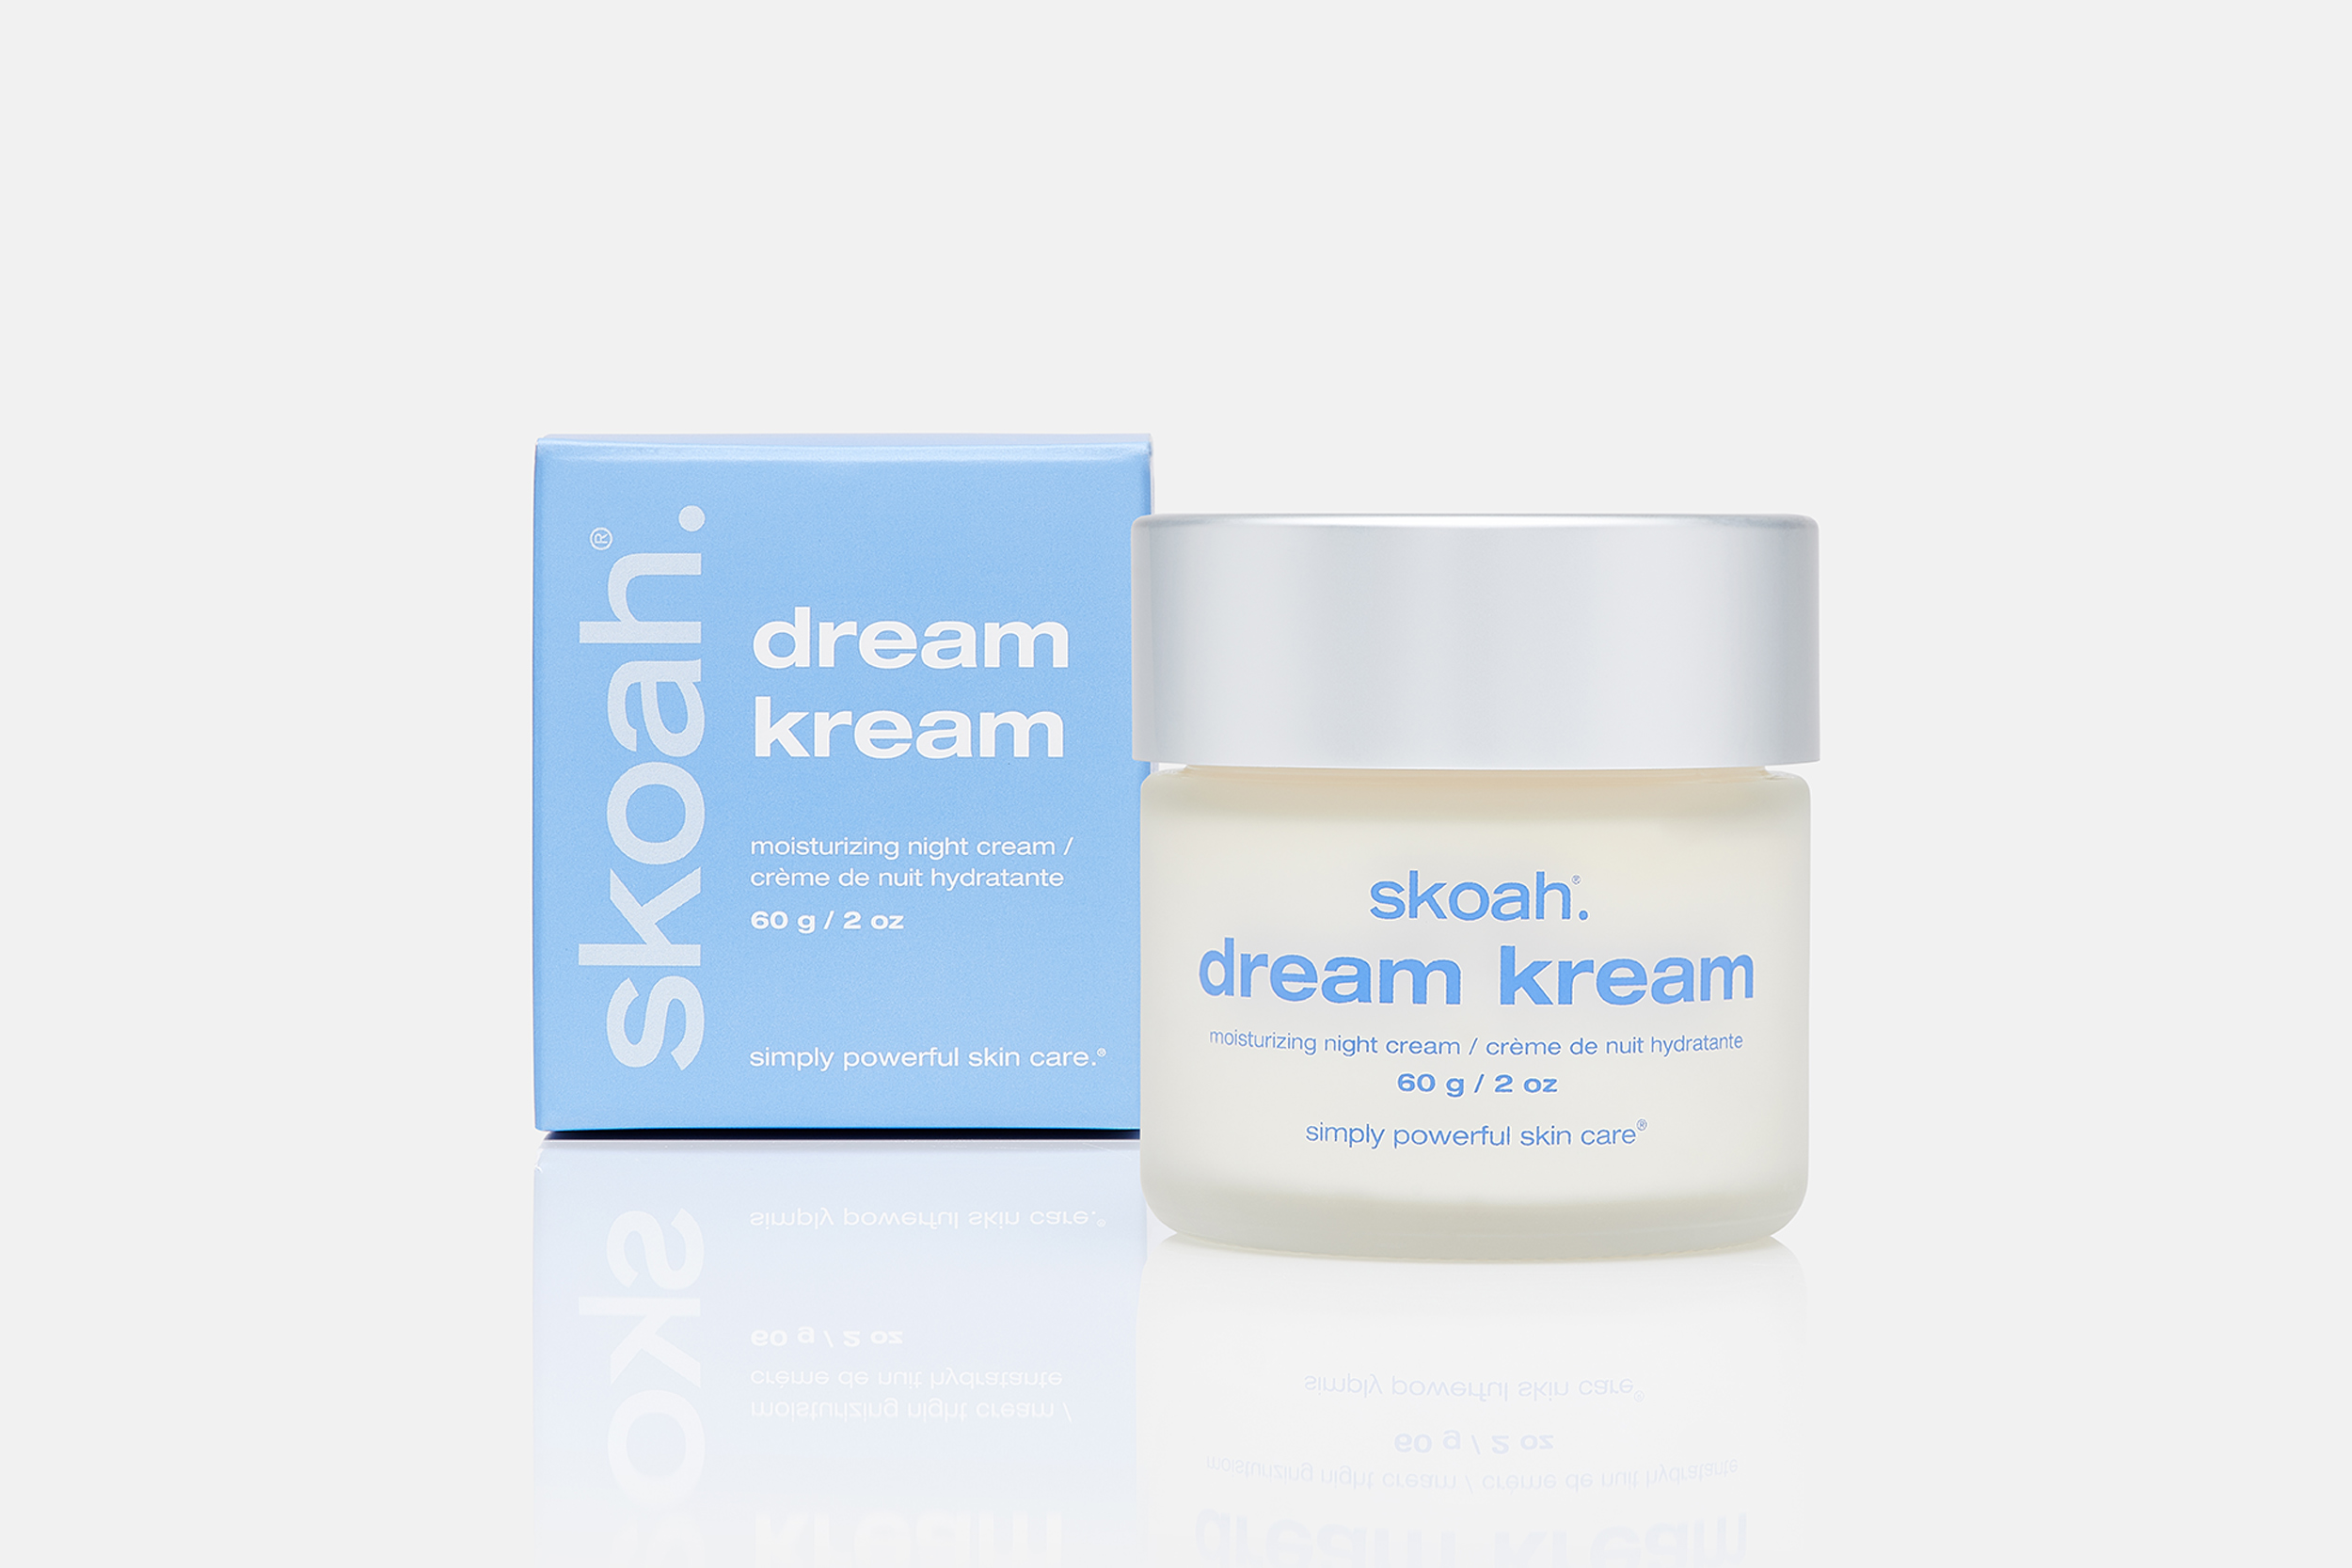 2020-Vancouver-Skincare-Product-Photographer-Erich-Saide-Skoah-Dream-Kream-Box